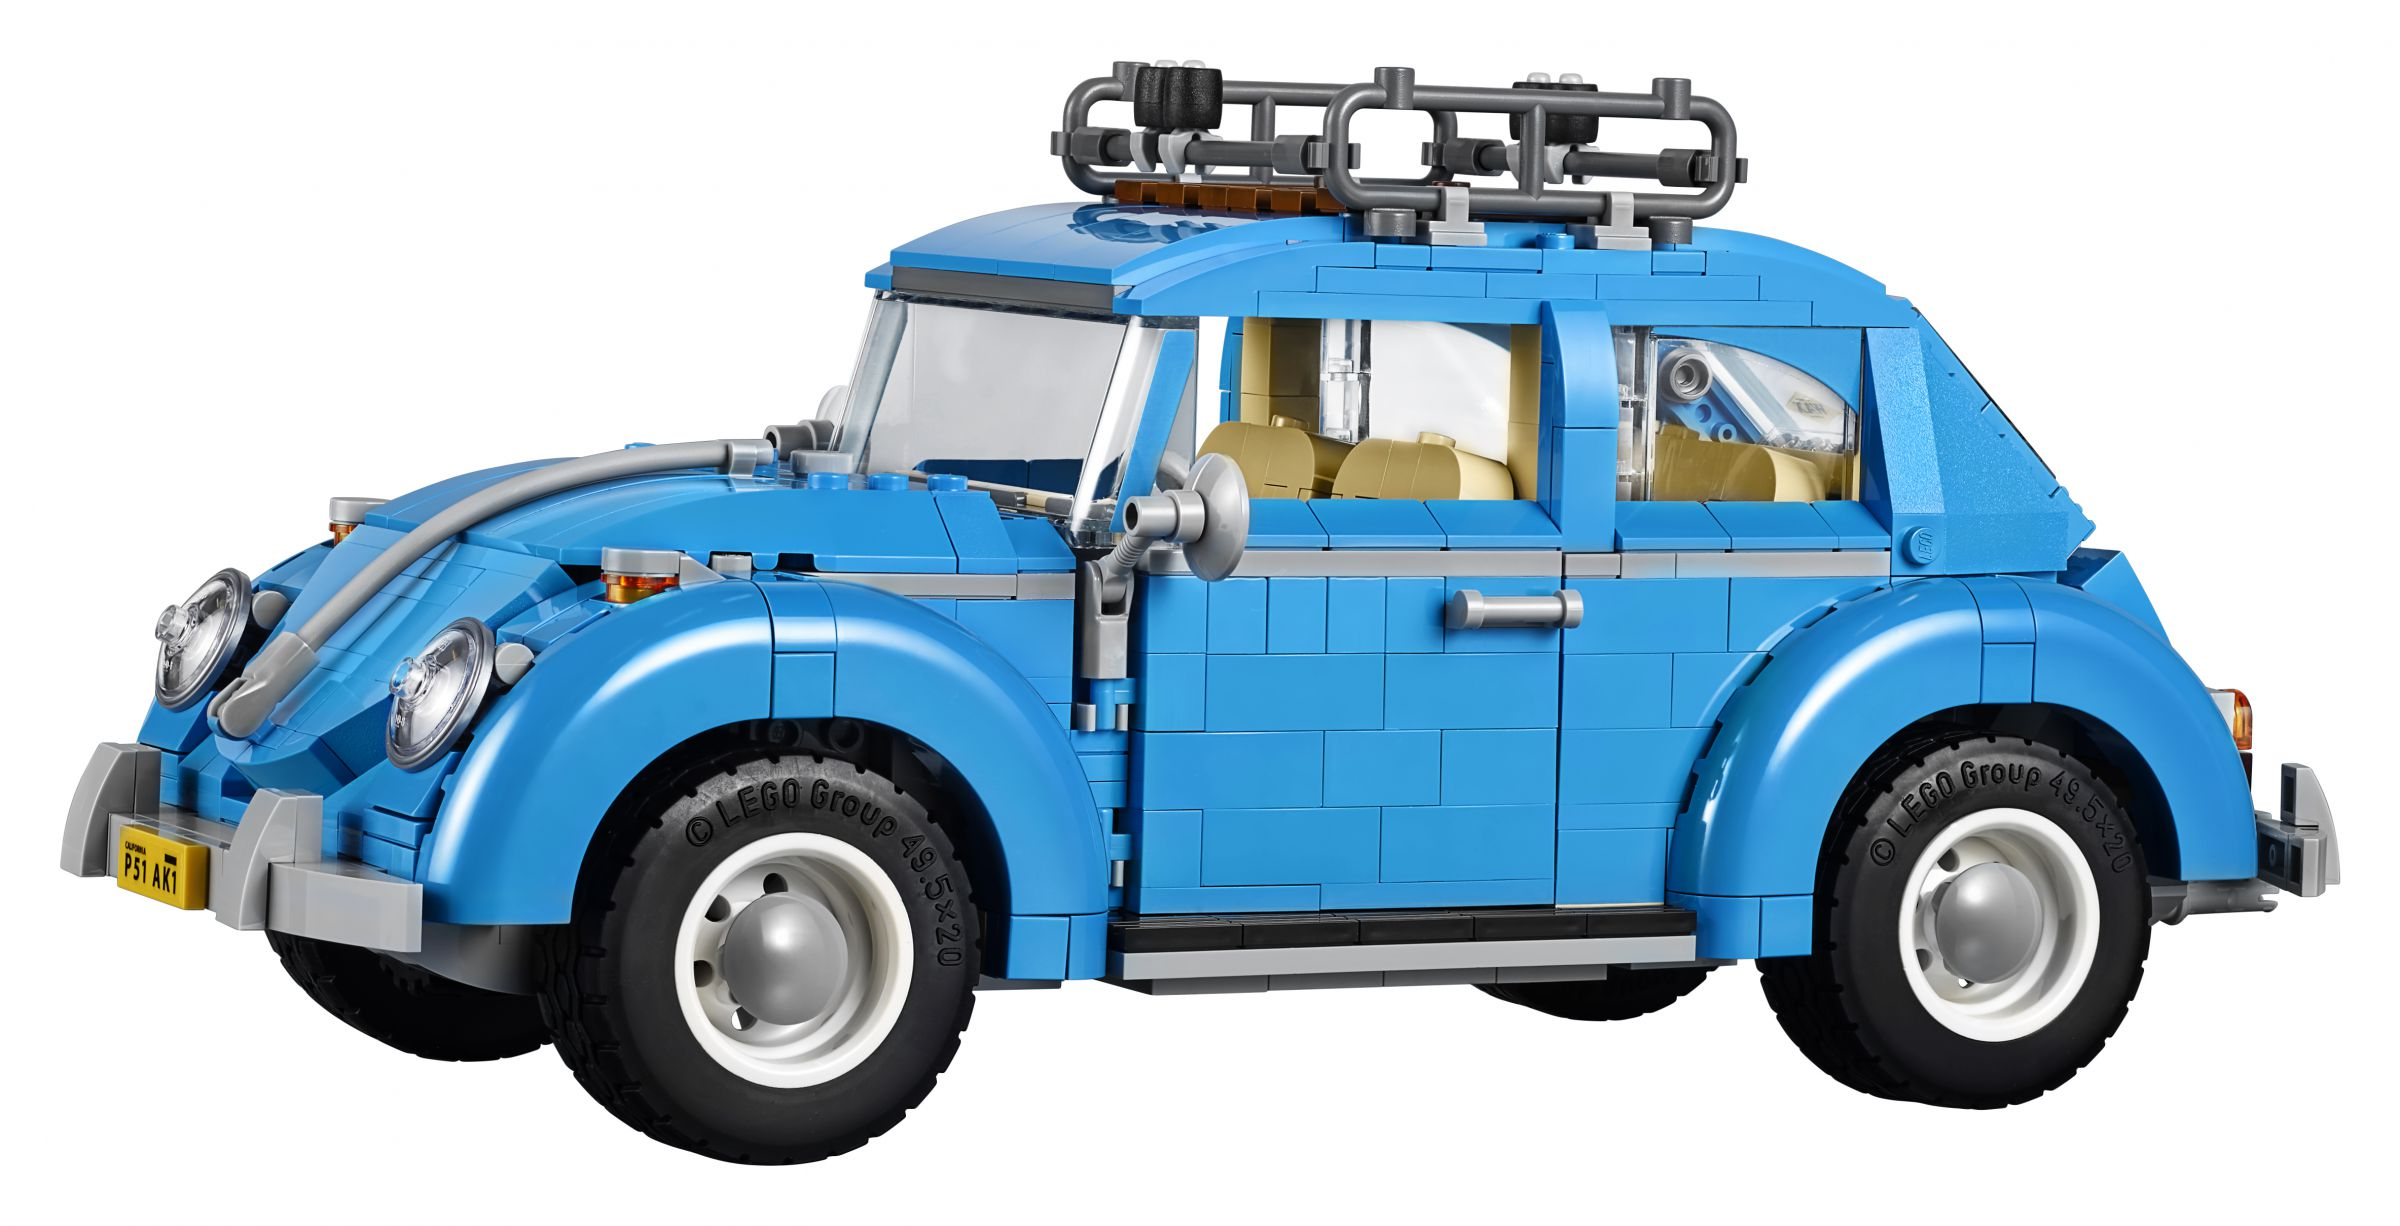 LEGO Advanced Models 10252 VW Käfer LEGO_10252_Volkswagen_Beetle_05.jpg